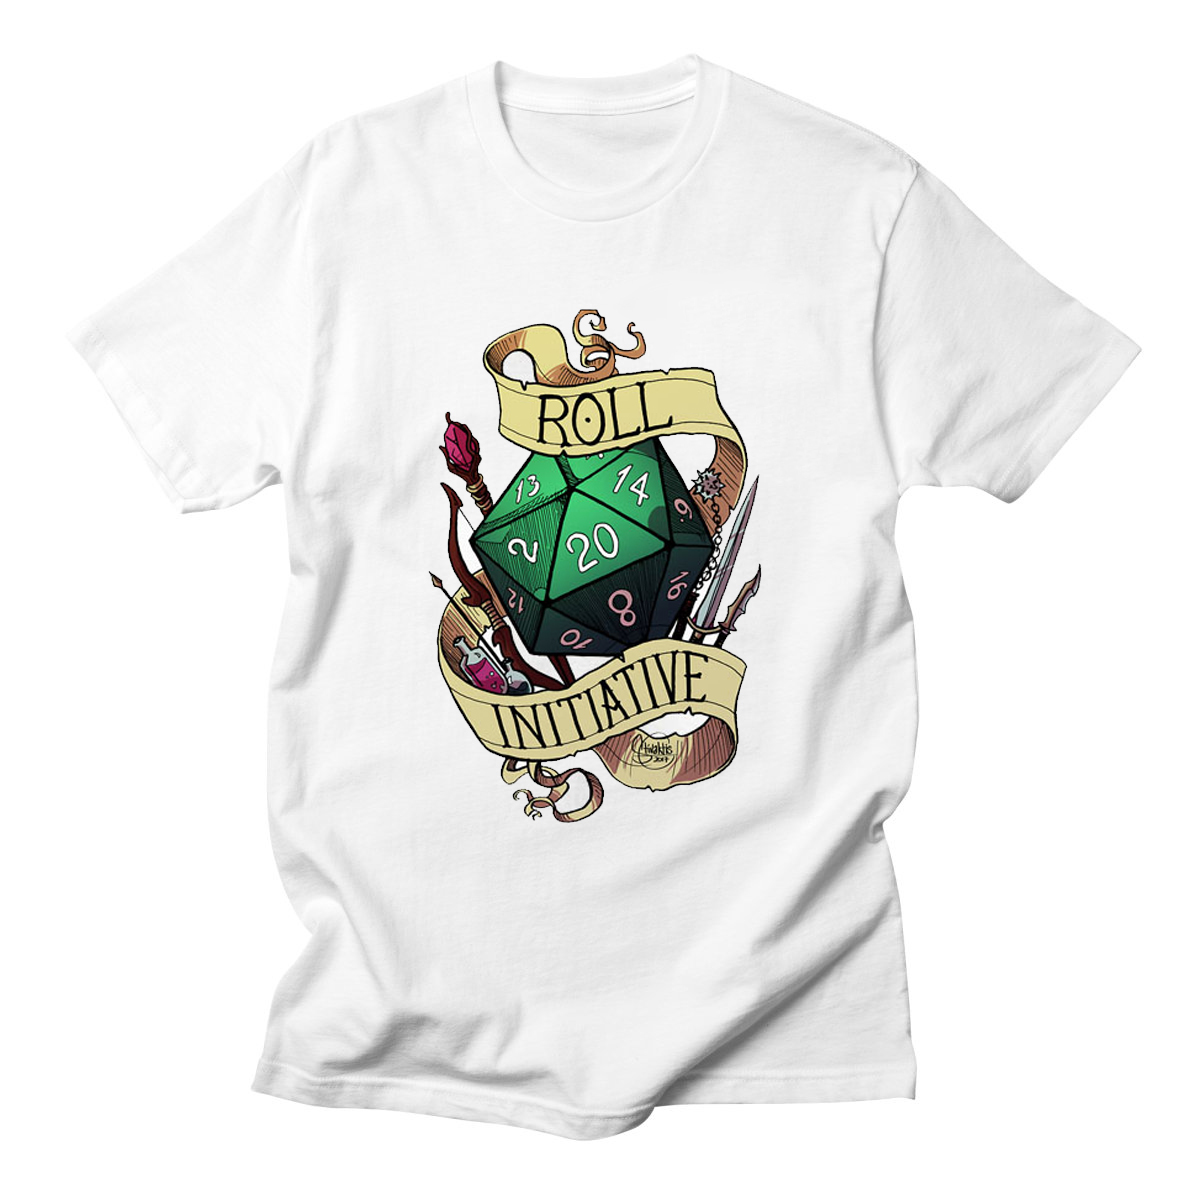 Roll Initiative Video Game Gaming T Shirts Dnd Dungeons Dragons D20 D D Critical Role The Adventure Zone 20 Sided Die